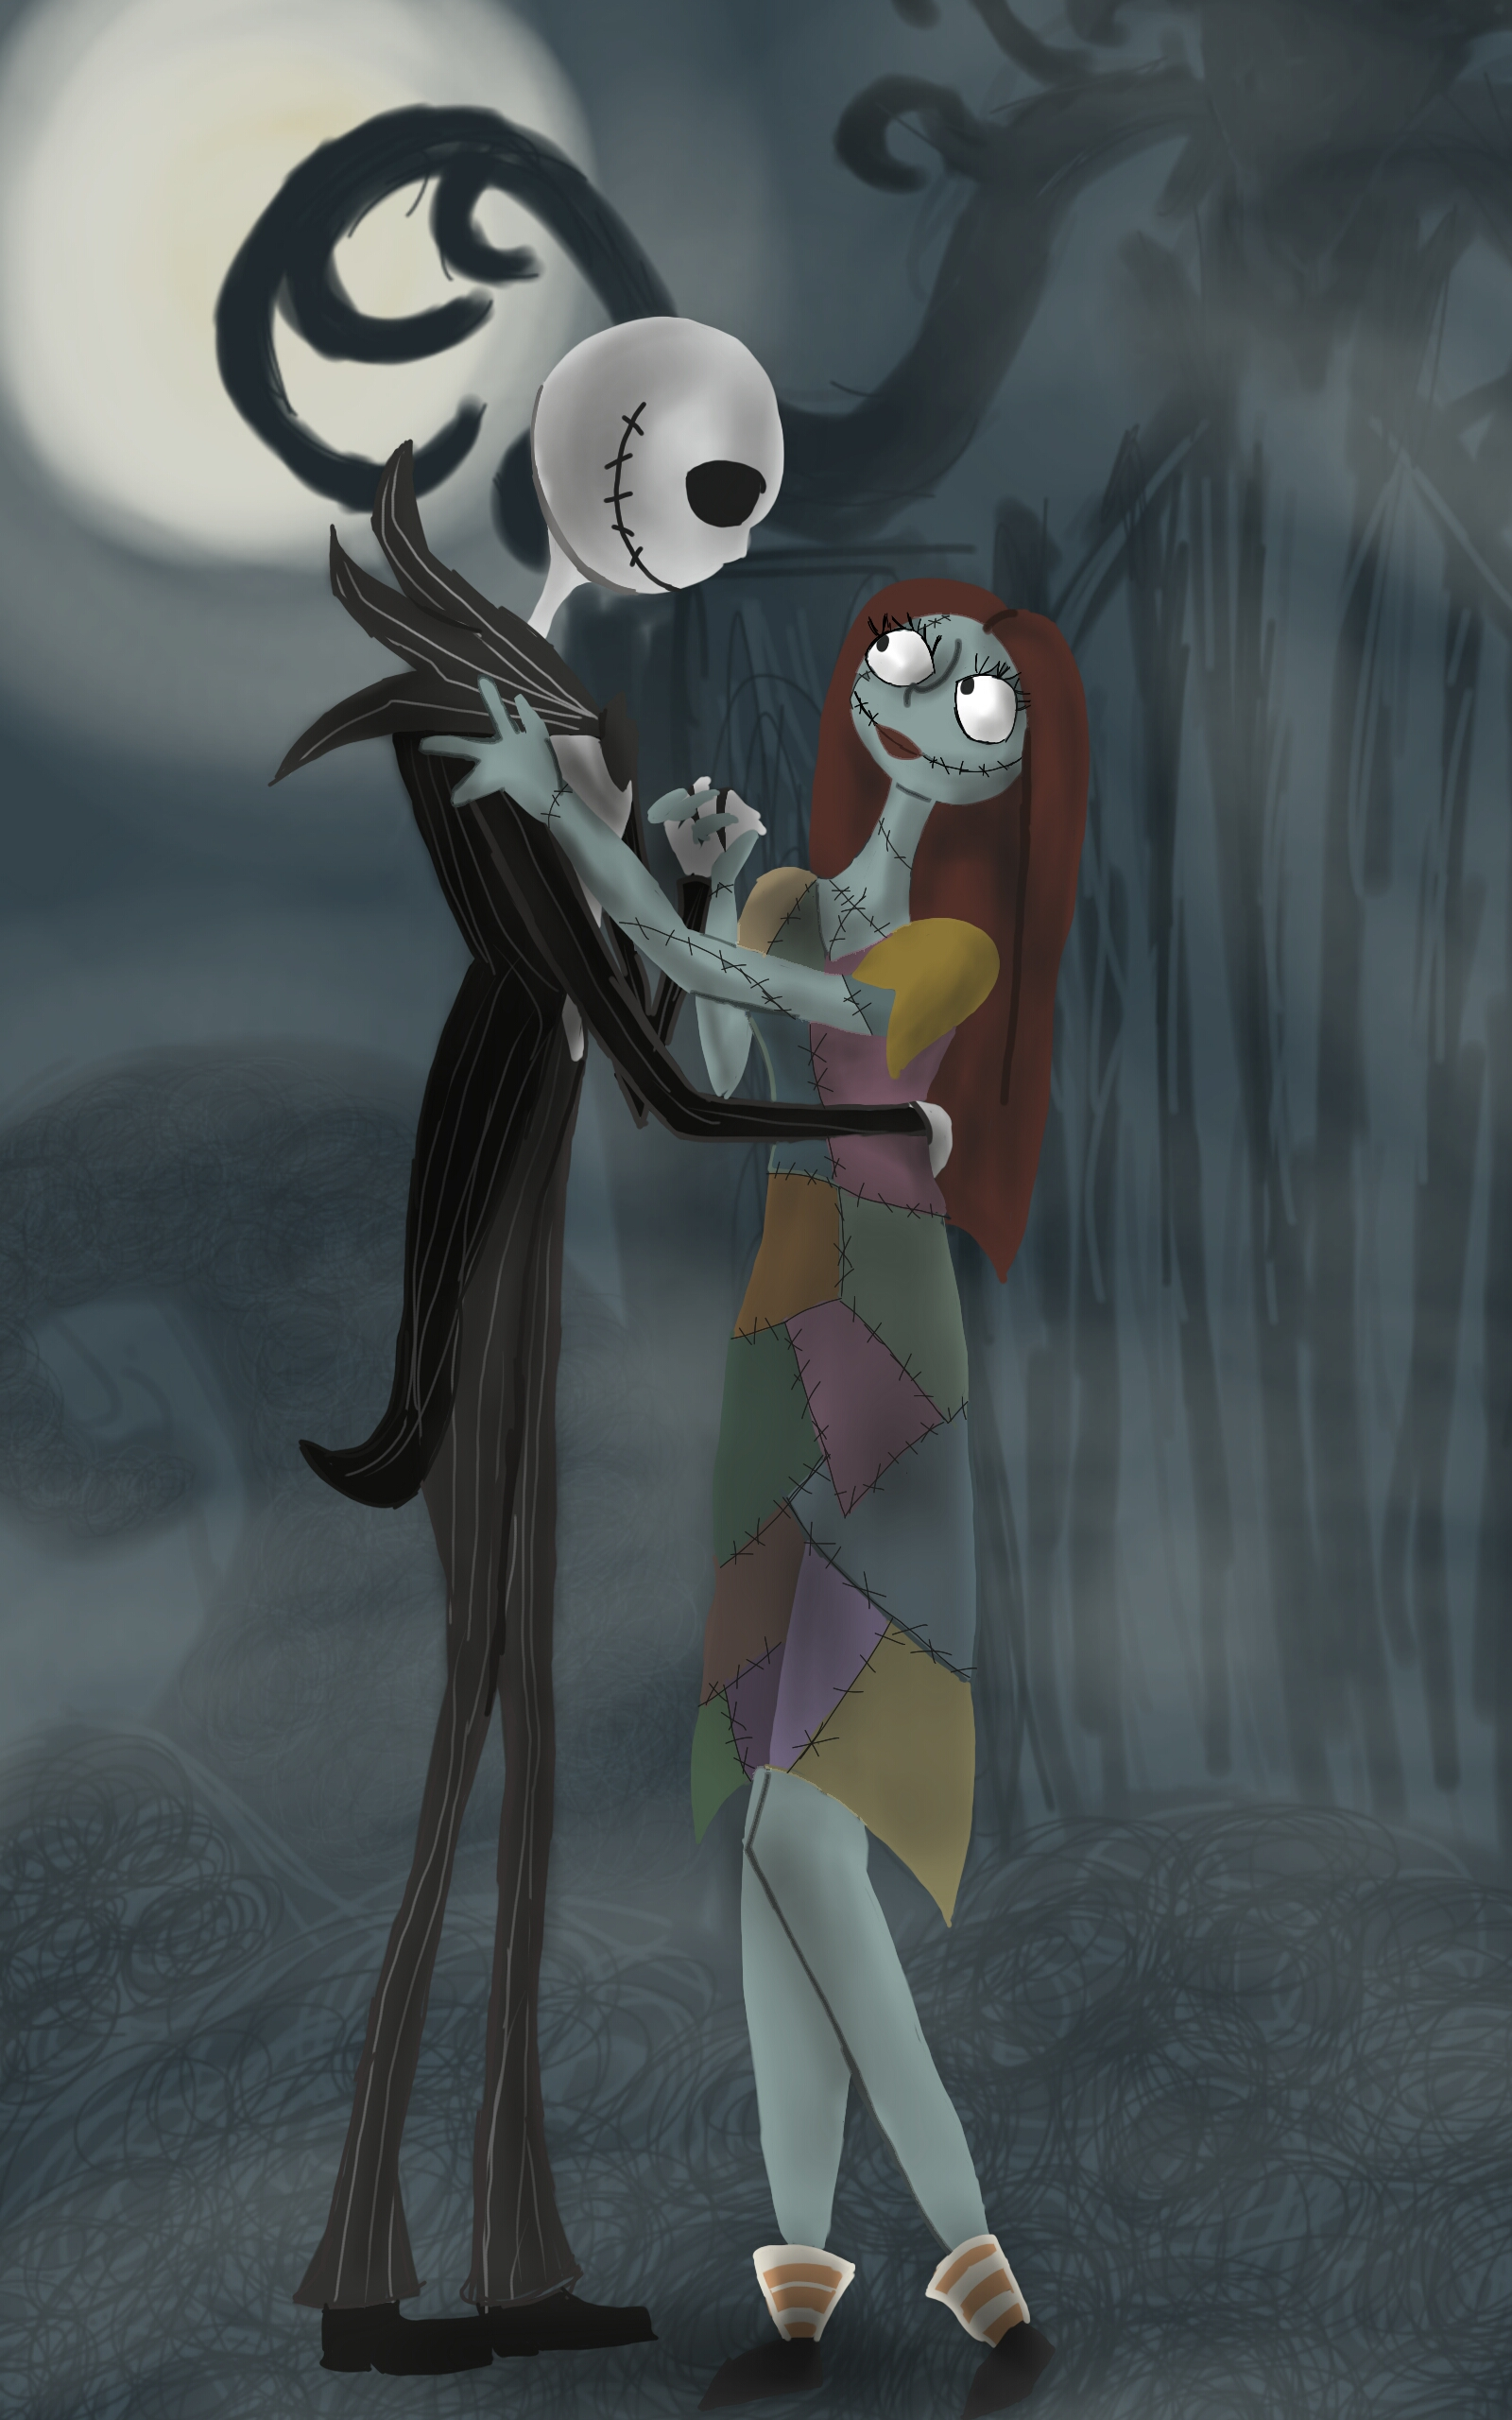 Jack and Sally by Paulycat on DeviantArt